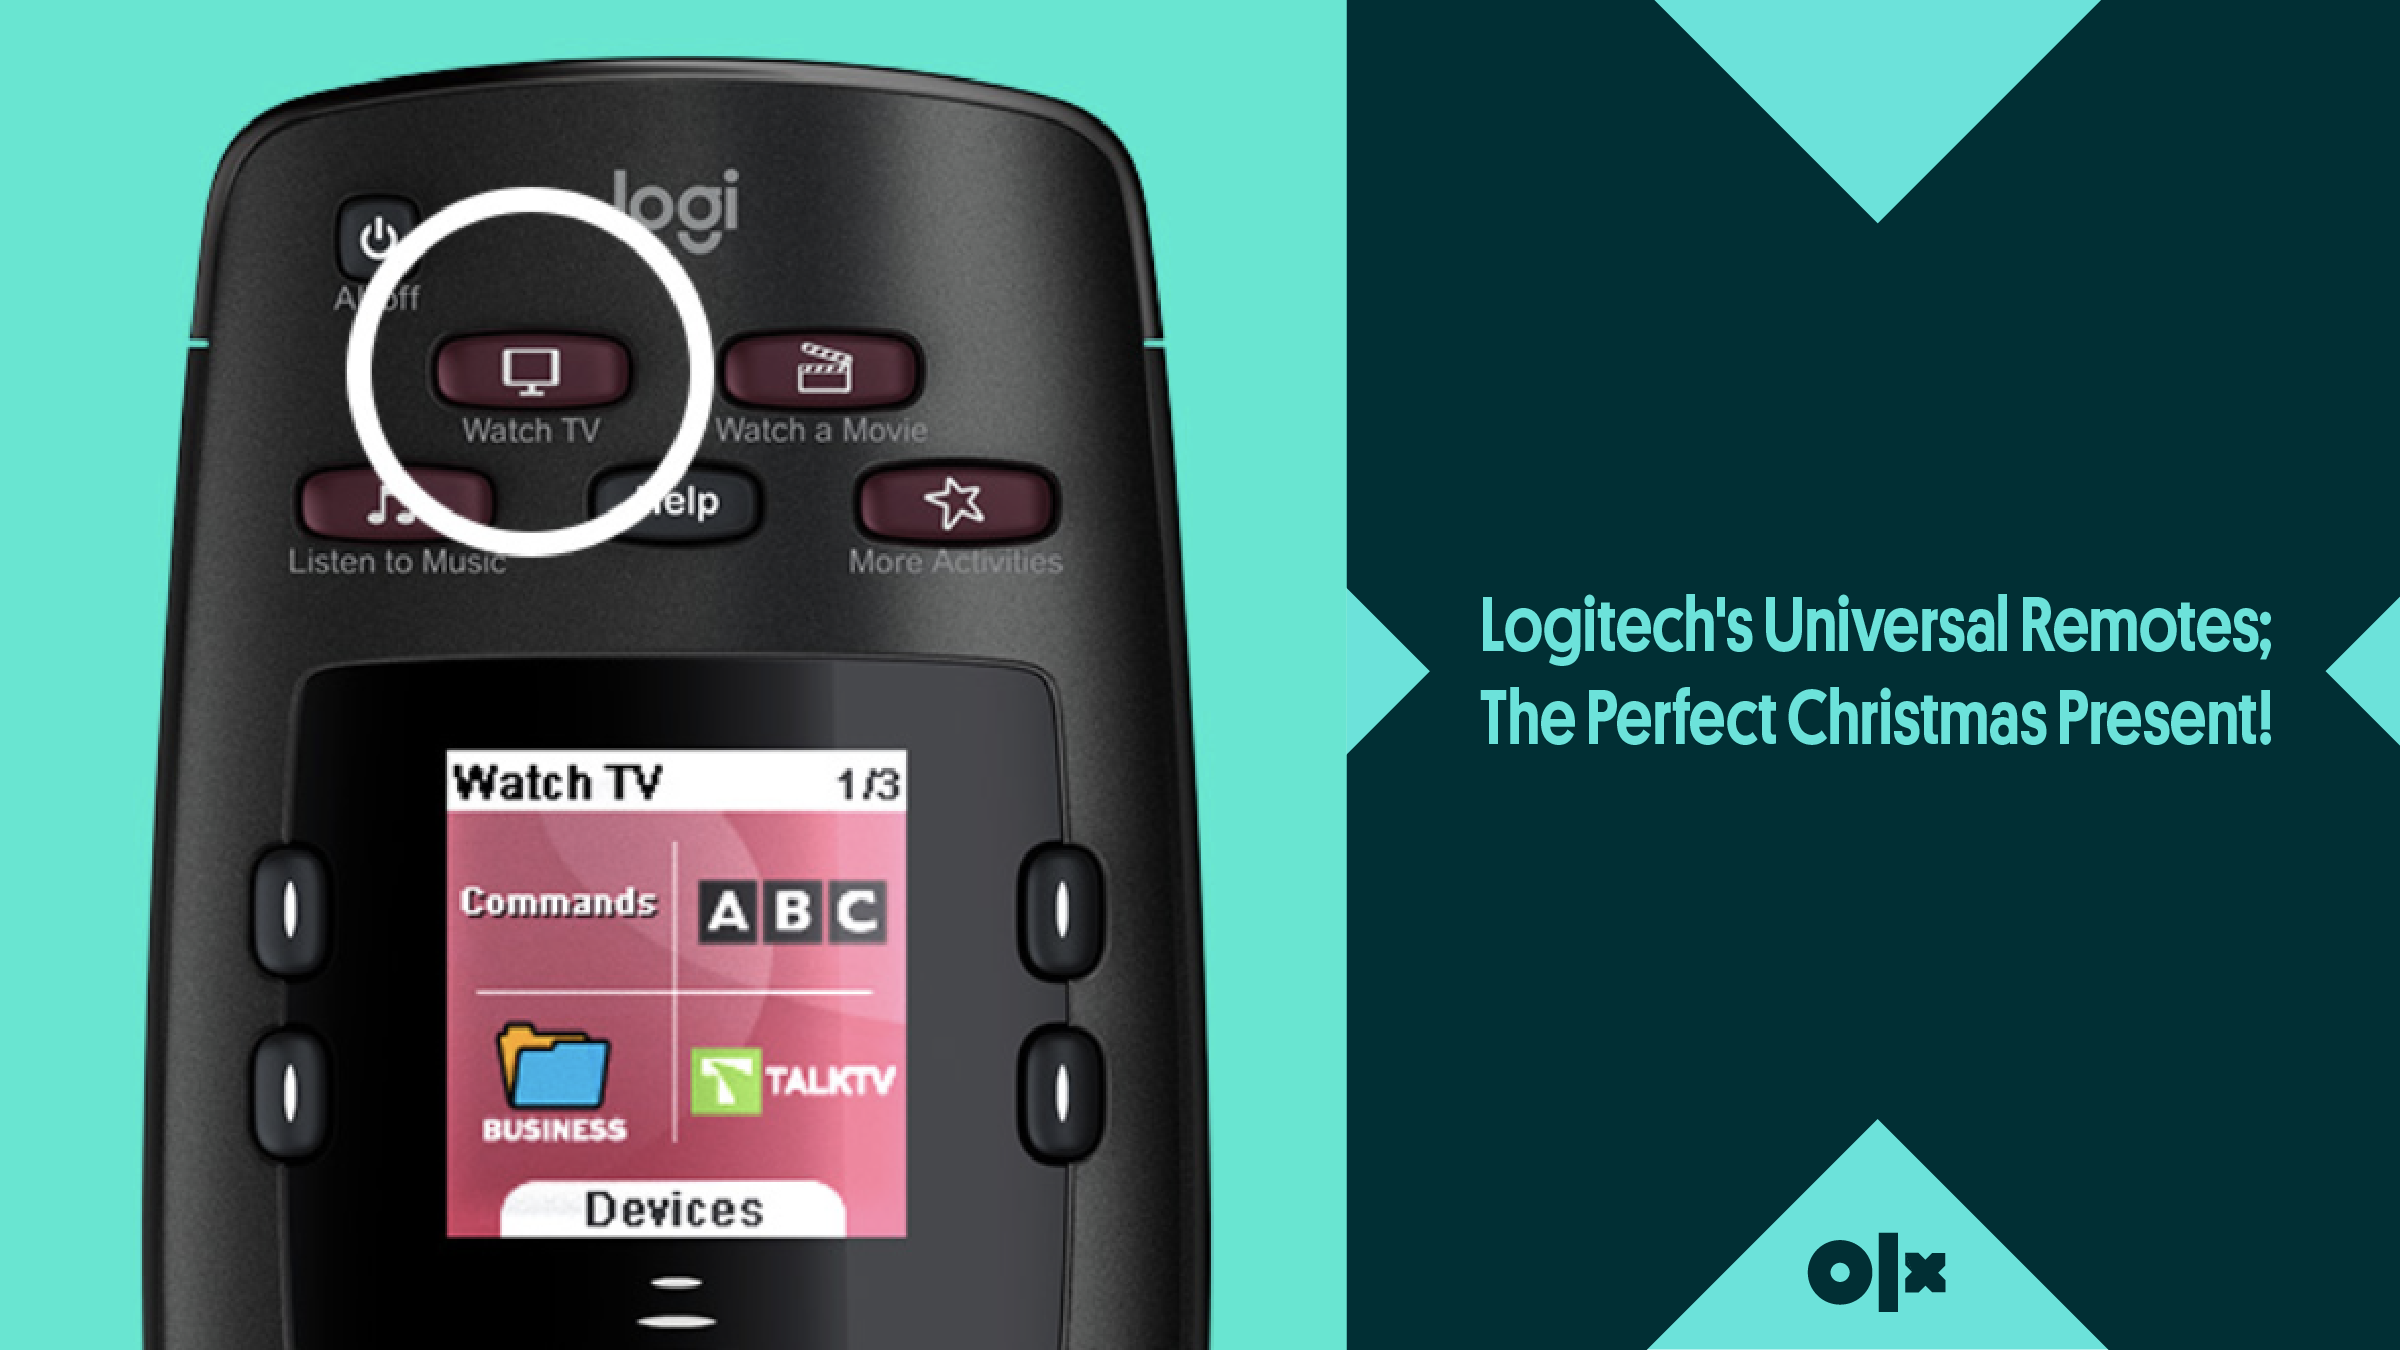 Logitech's Universal Remotes; The Perfect Christmas Present!